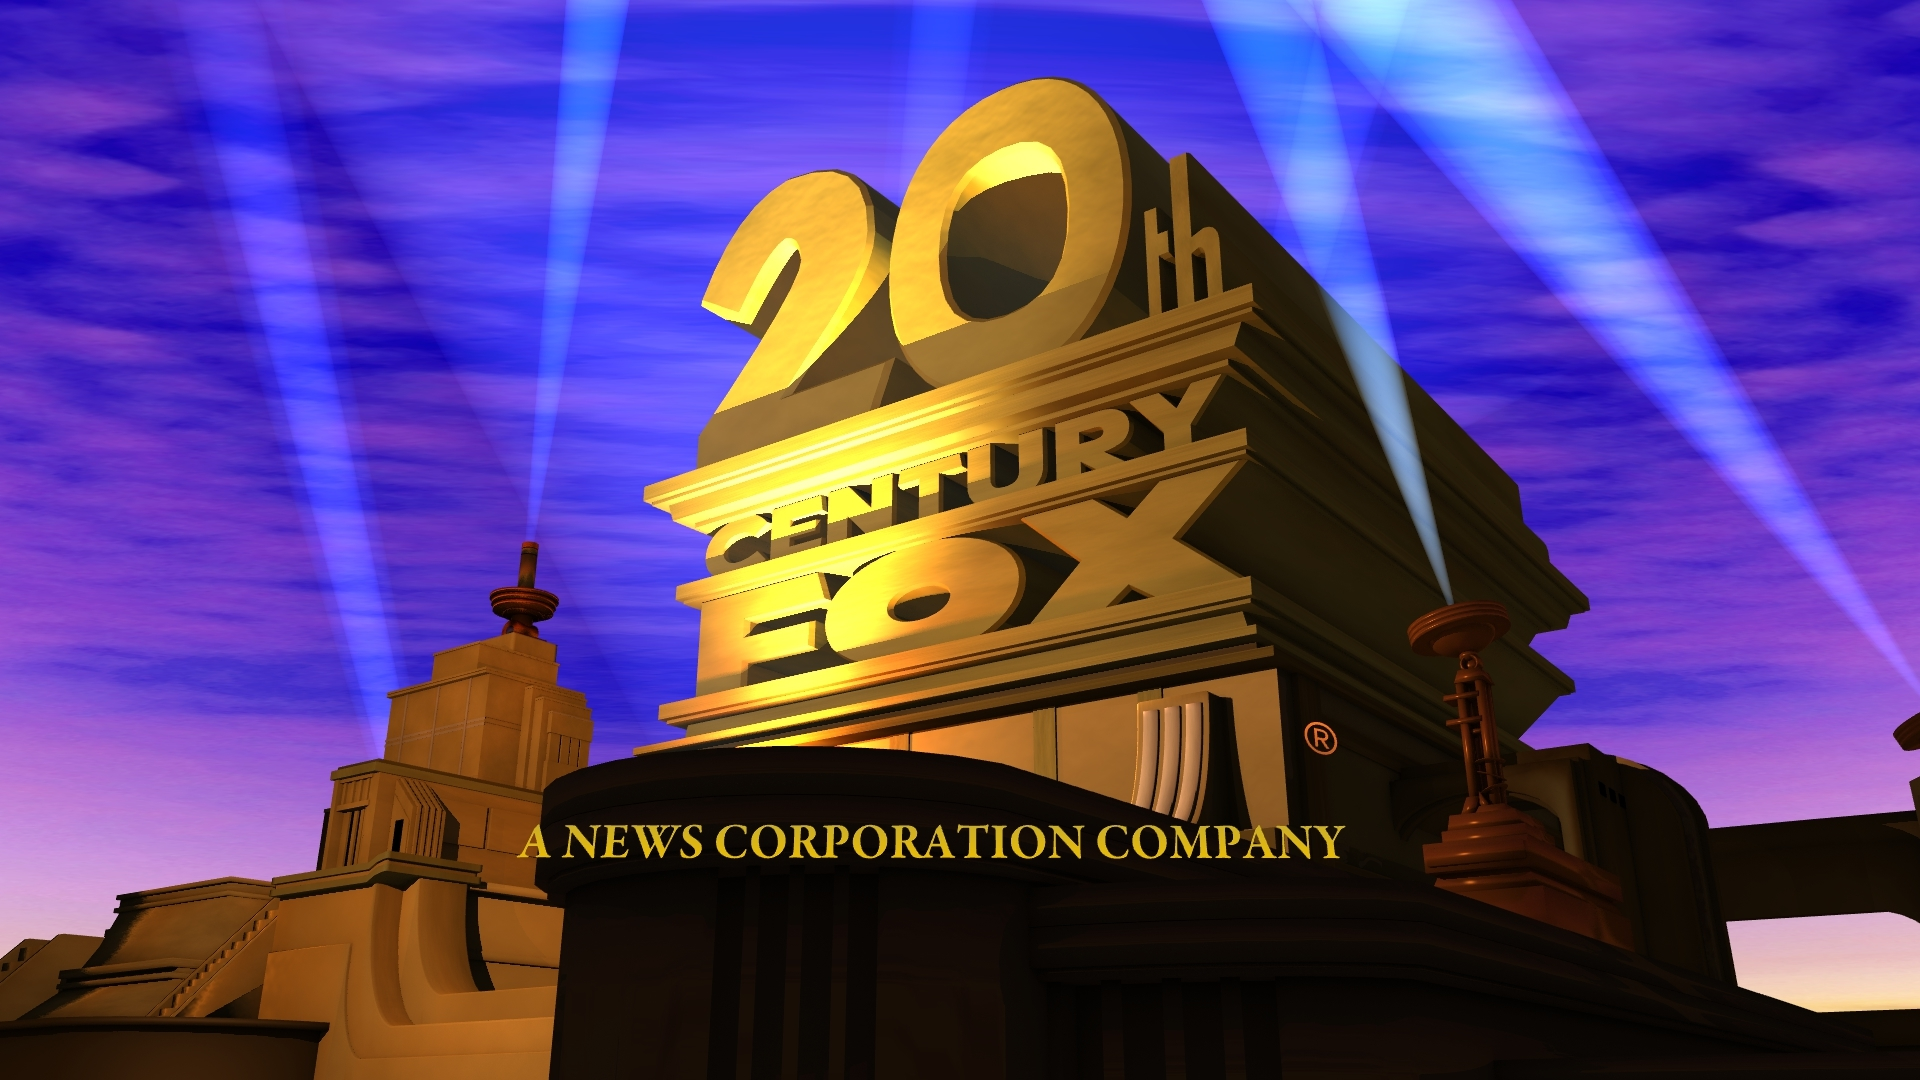 20th-Century-Fox-2009-twentieth-century-fox-film-corporation-25921793-1920-1080